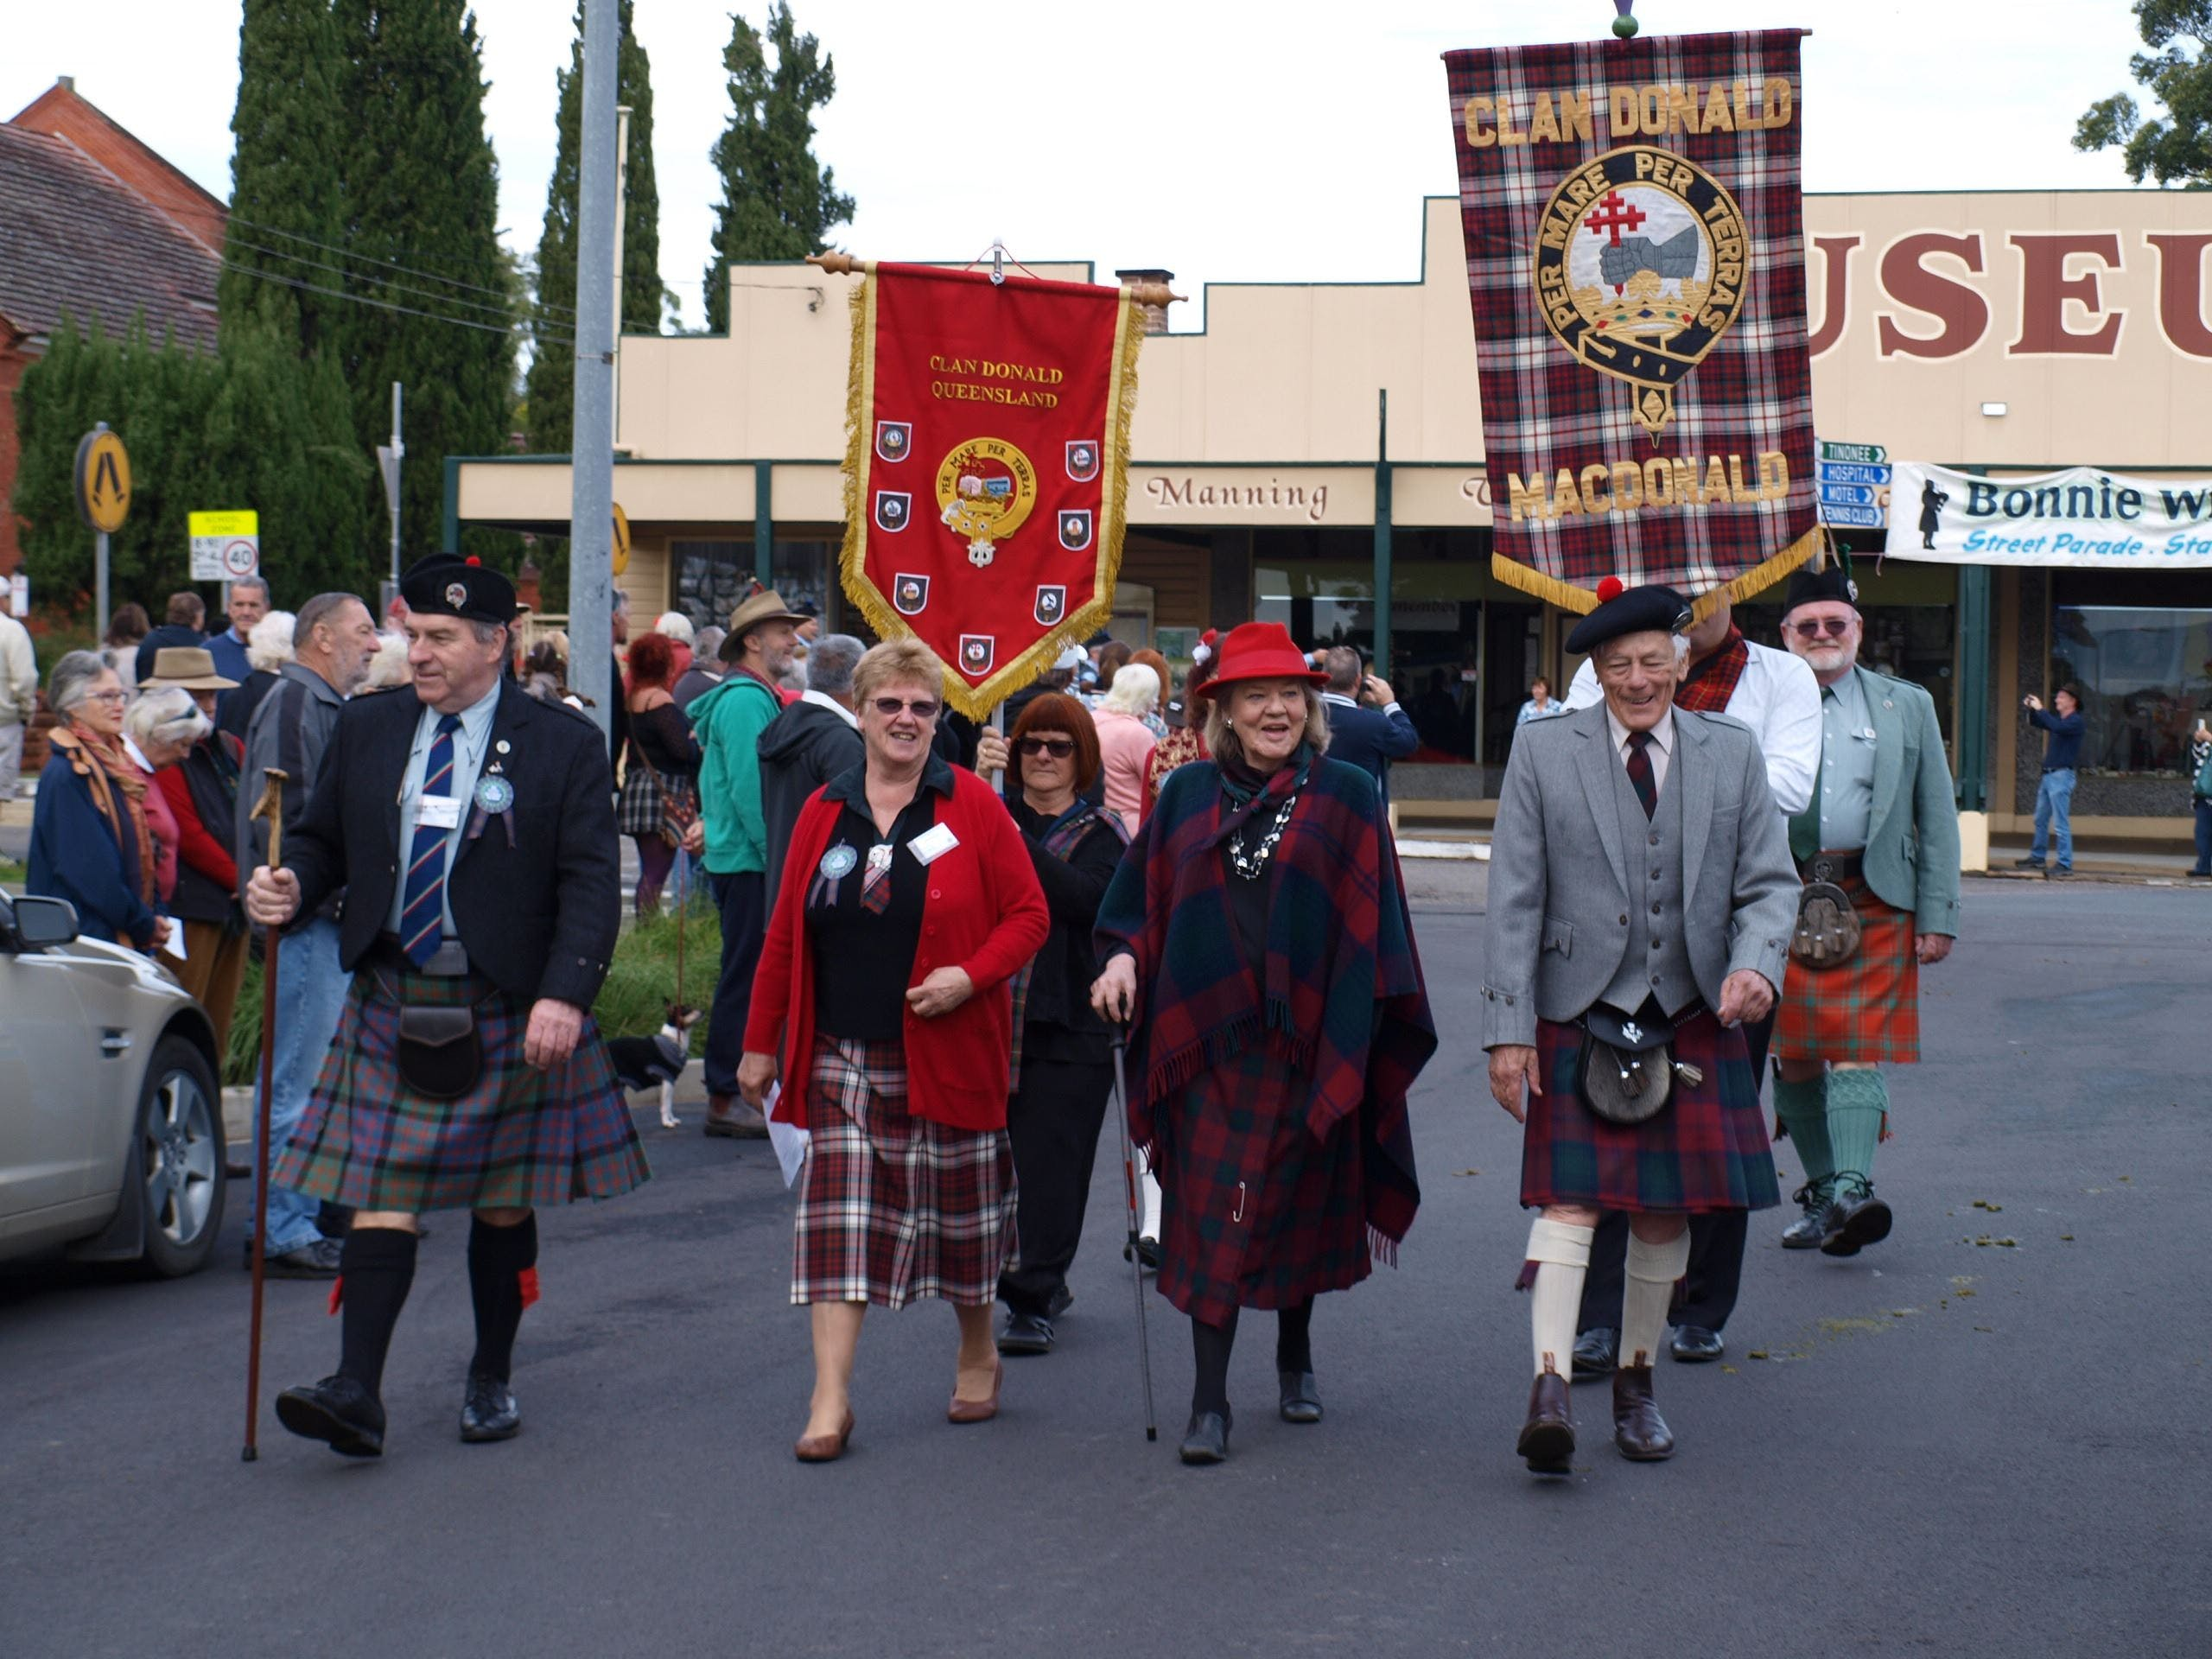 Bonnie Wingham Scottish Festival - Wagga Wagga Accommodation